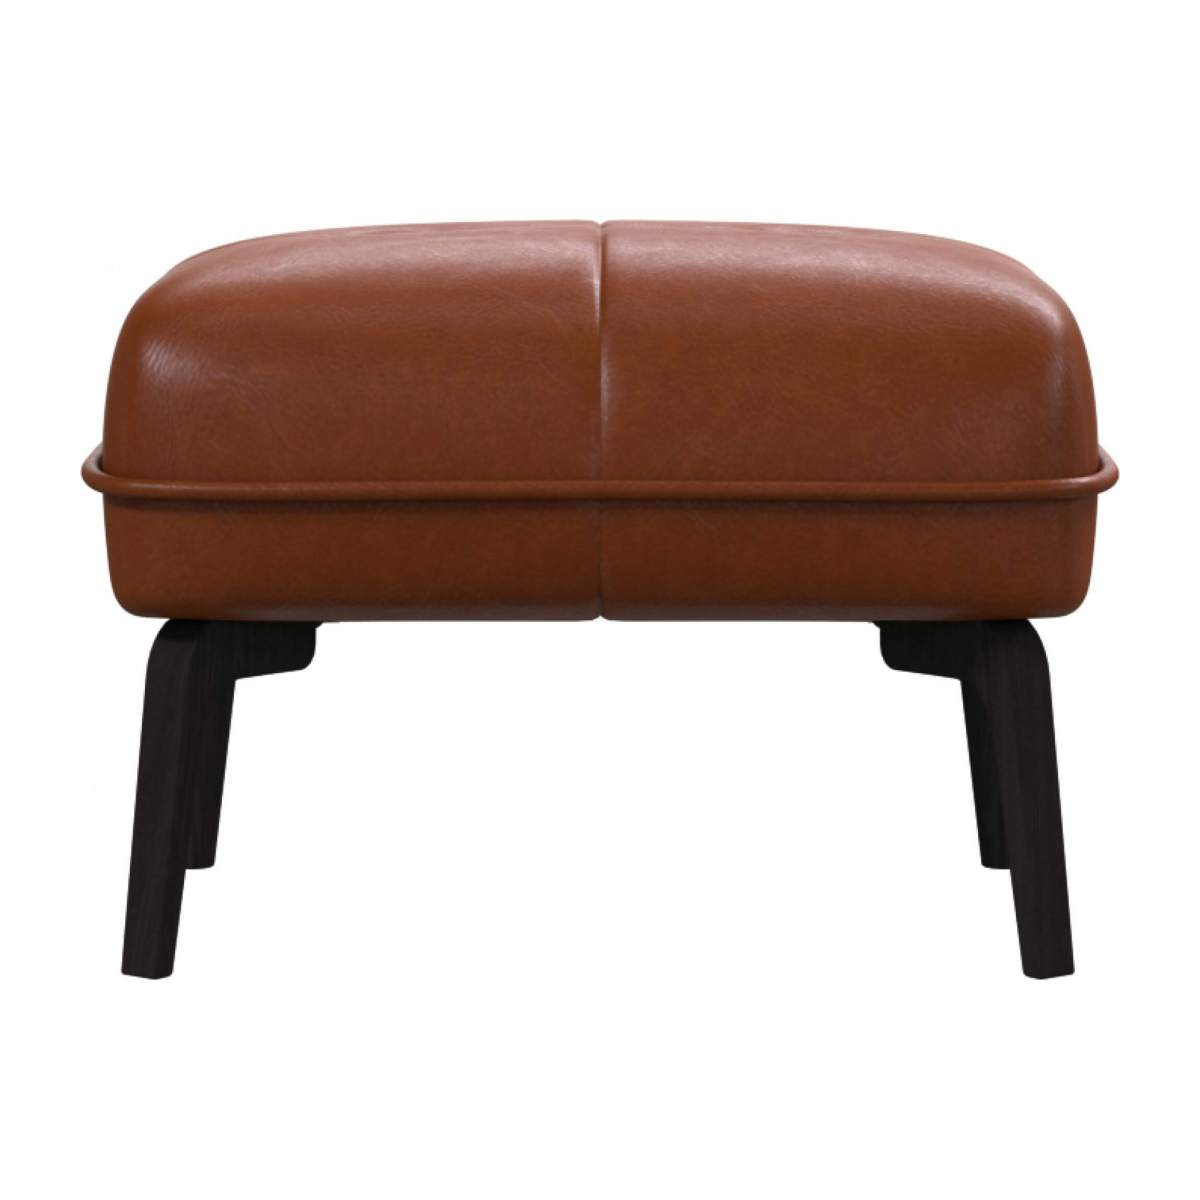 Footstool in Vintage aniline leather, old chestnut and dark feet n°1